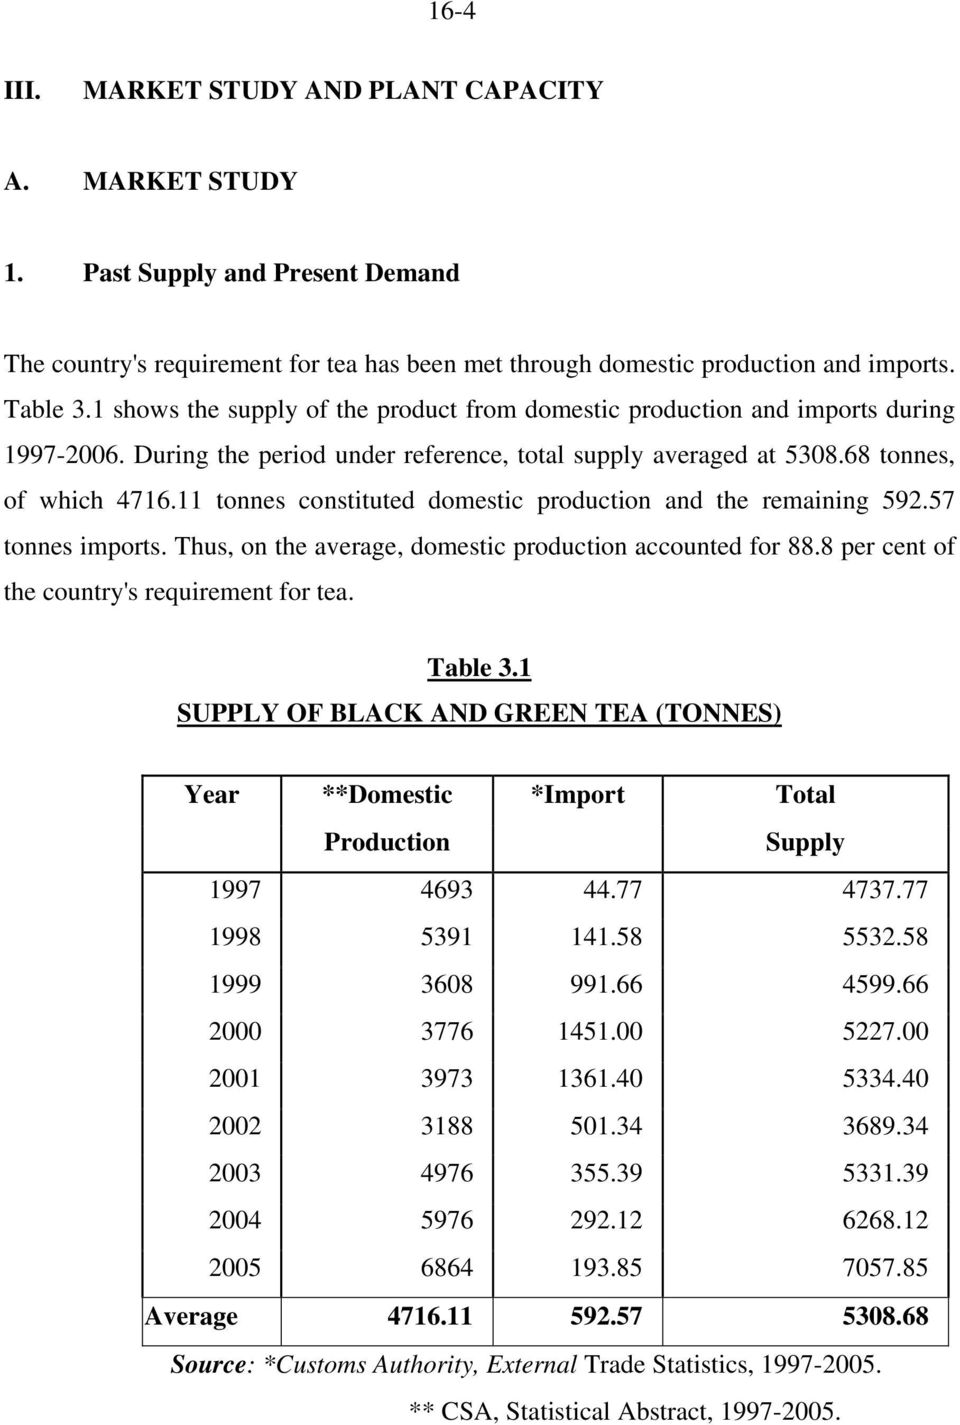 11 tonnes constituted domestic production and the remaining 592.57 tonnes imports. Thus, on the average, domestic production accounted for 88.8 per cent of the country's requirement for tea. Table 3.